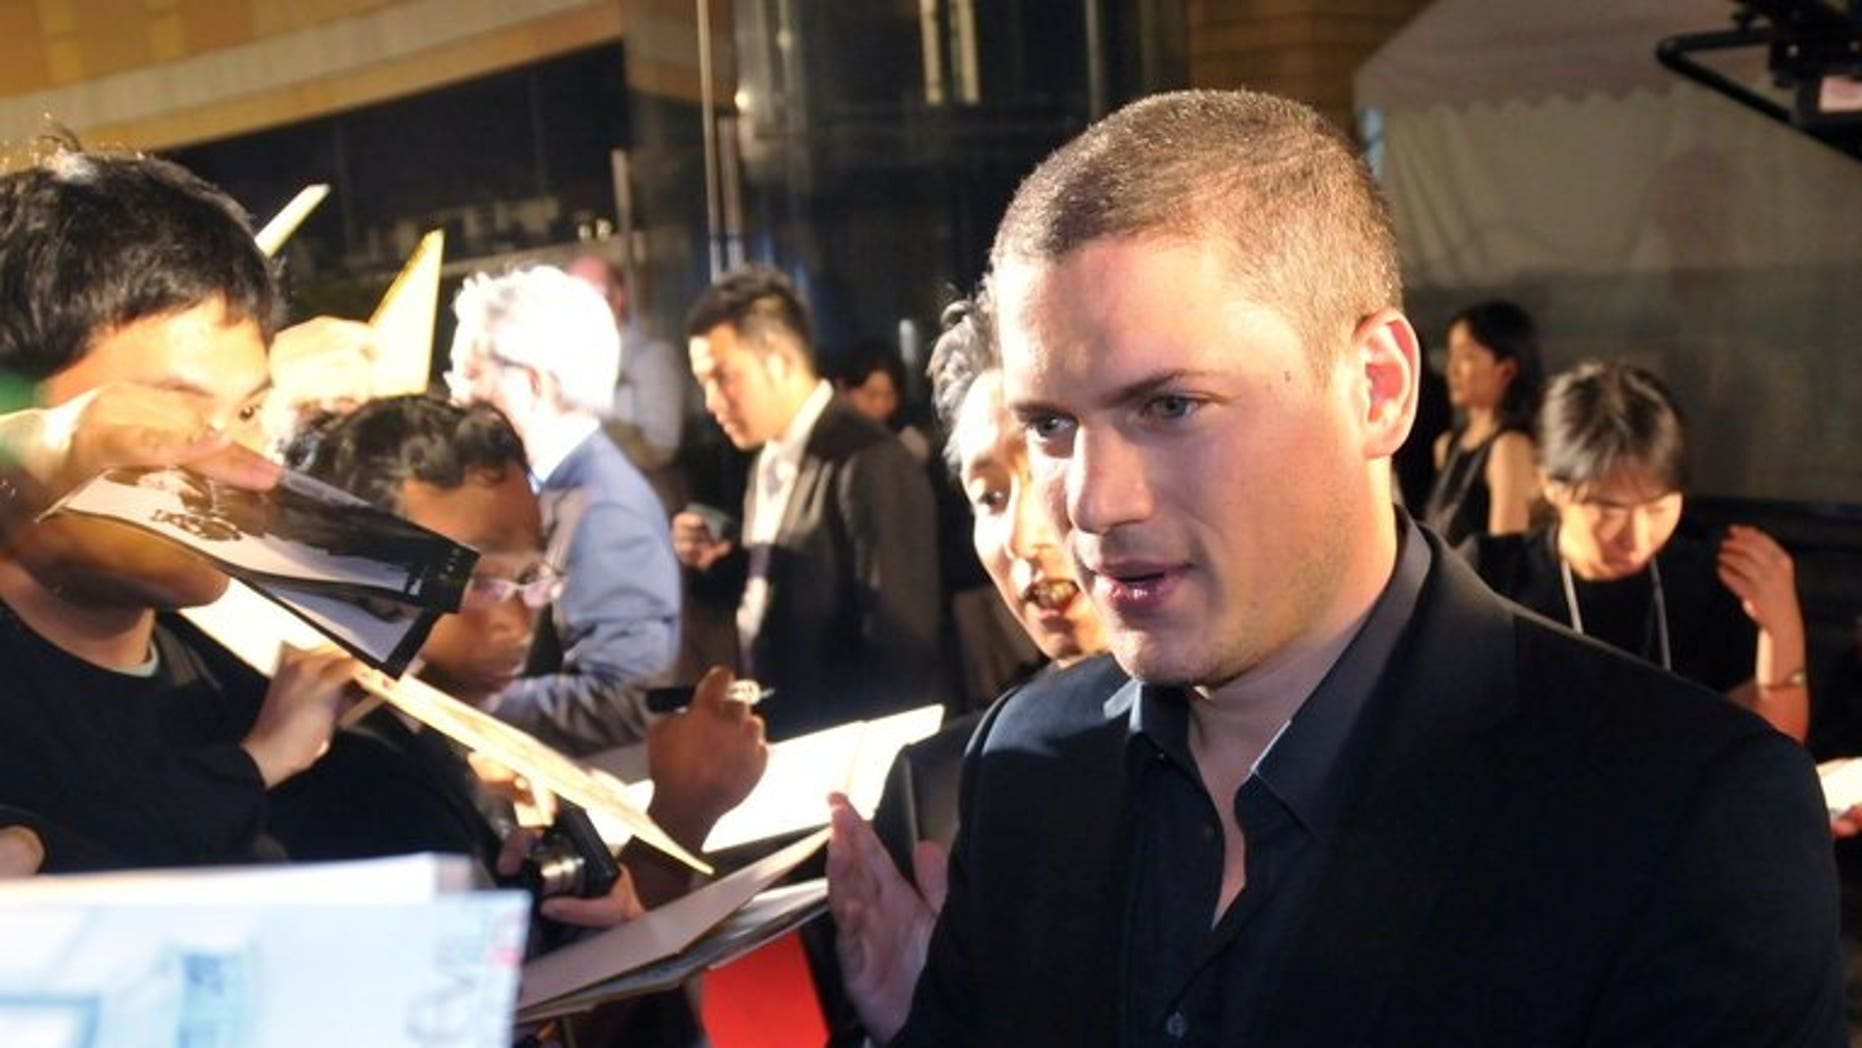 """Actor Wentworth Miller signs autographs for with Japanese fans in Tokyo on September 2, 2010. Miller has come out as gay in an open letter to Russia in which he rejected an invitation to attend a film festival in protest at the Kremlin's ban on homosexual """"propaganda""""."""